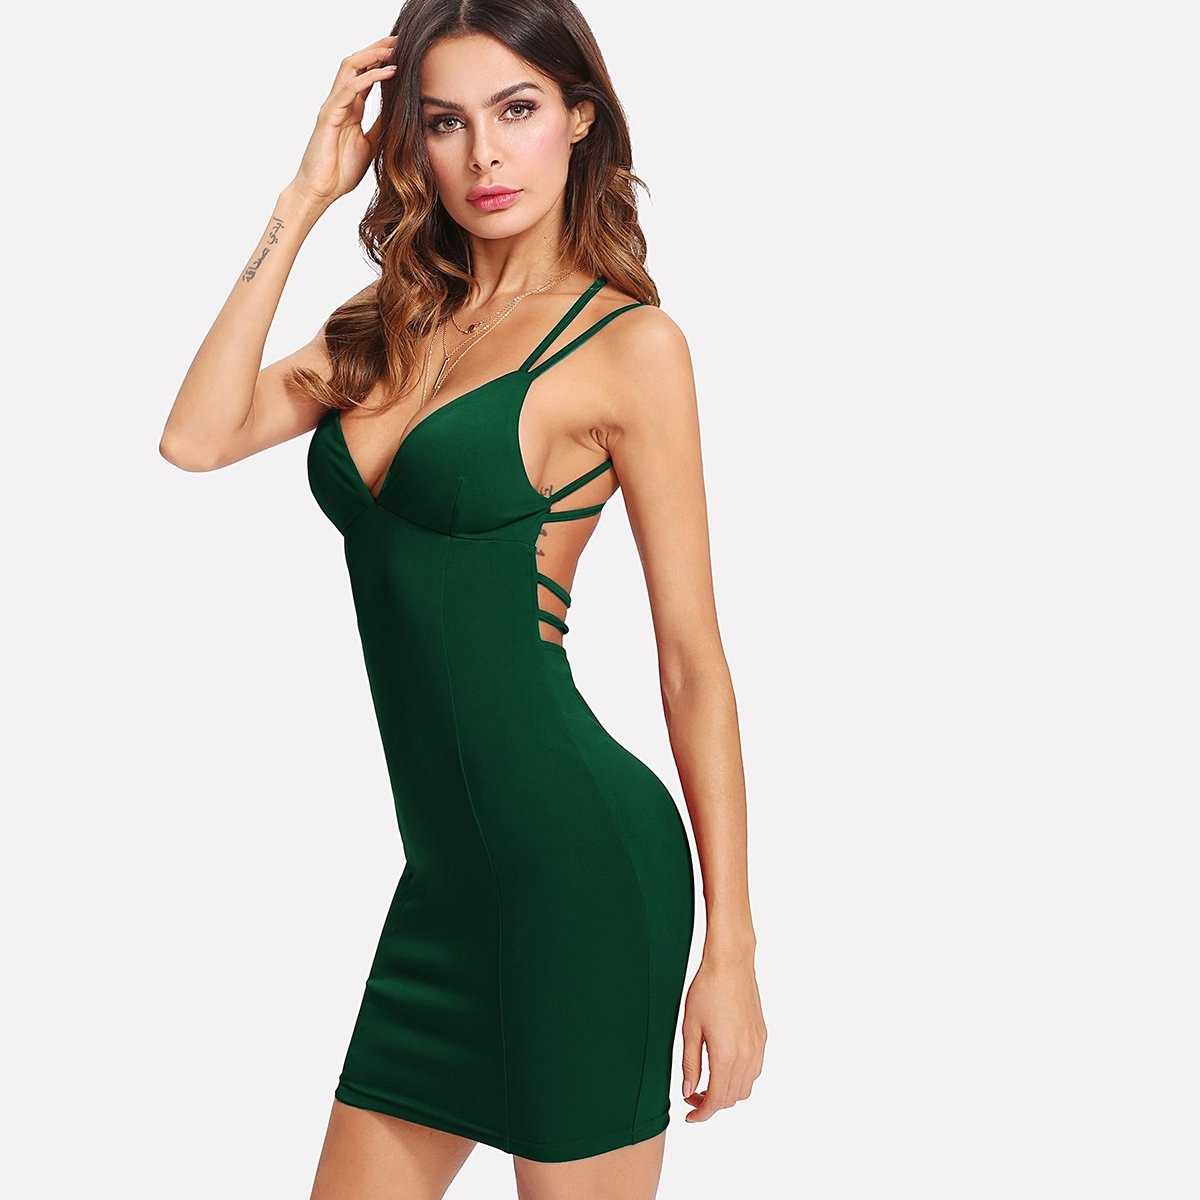 Criss-cross Strappy Back Bodycon Cami Dress in Green by ROMWE on GOOFASH